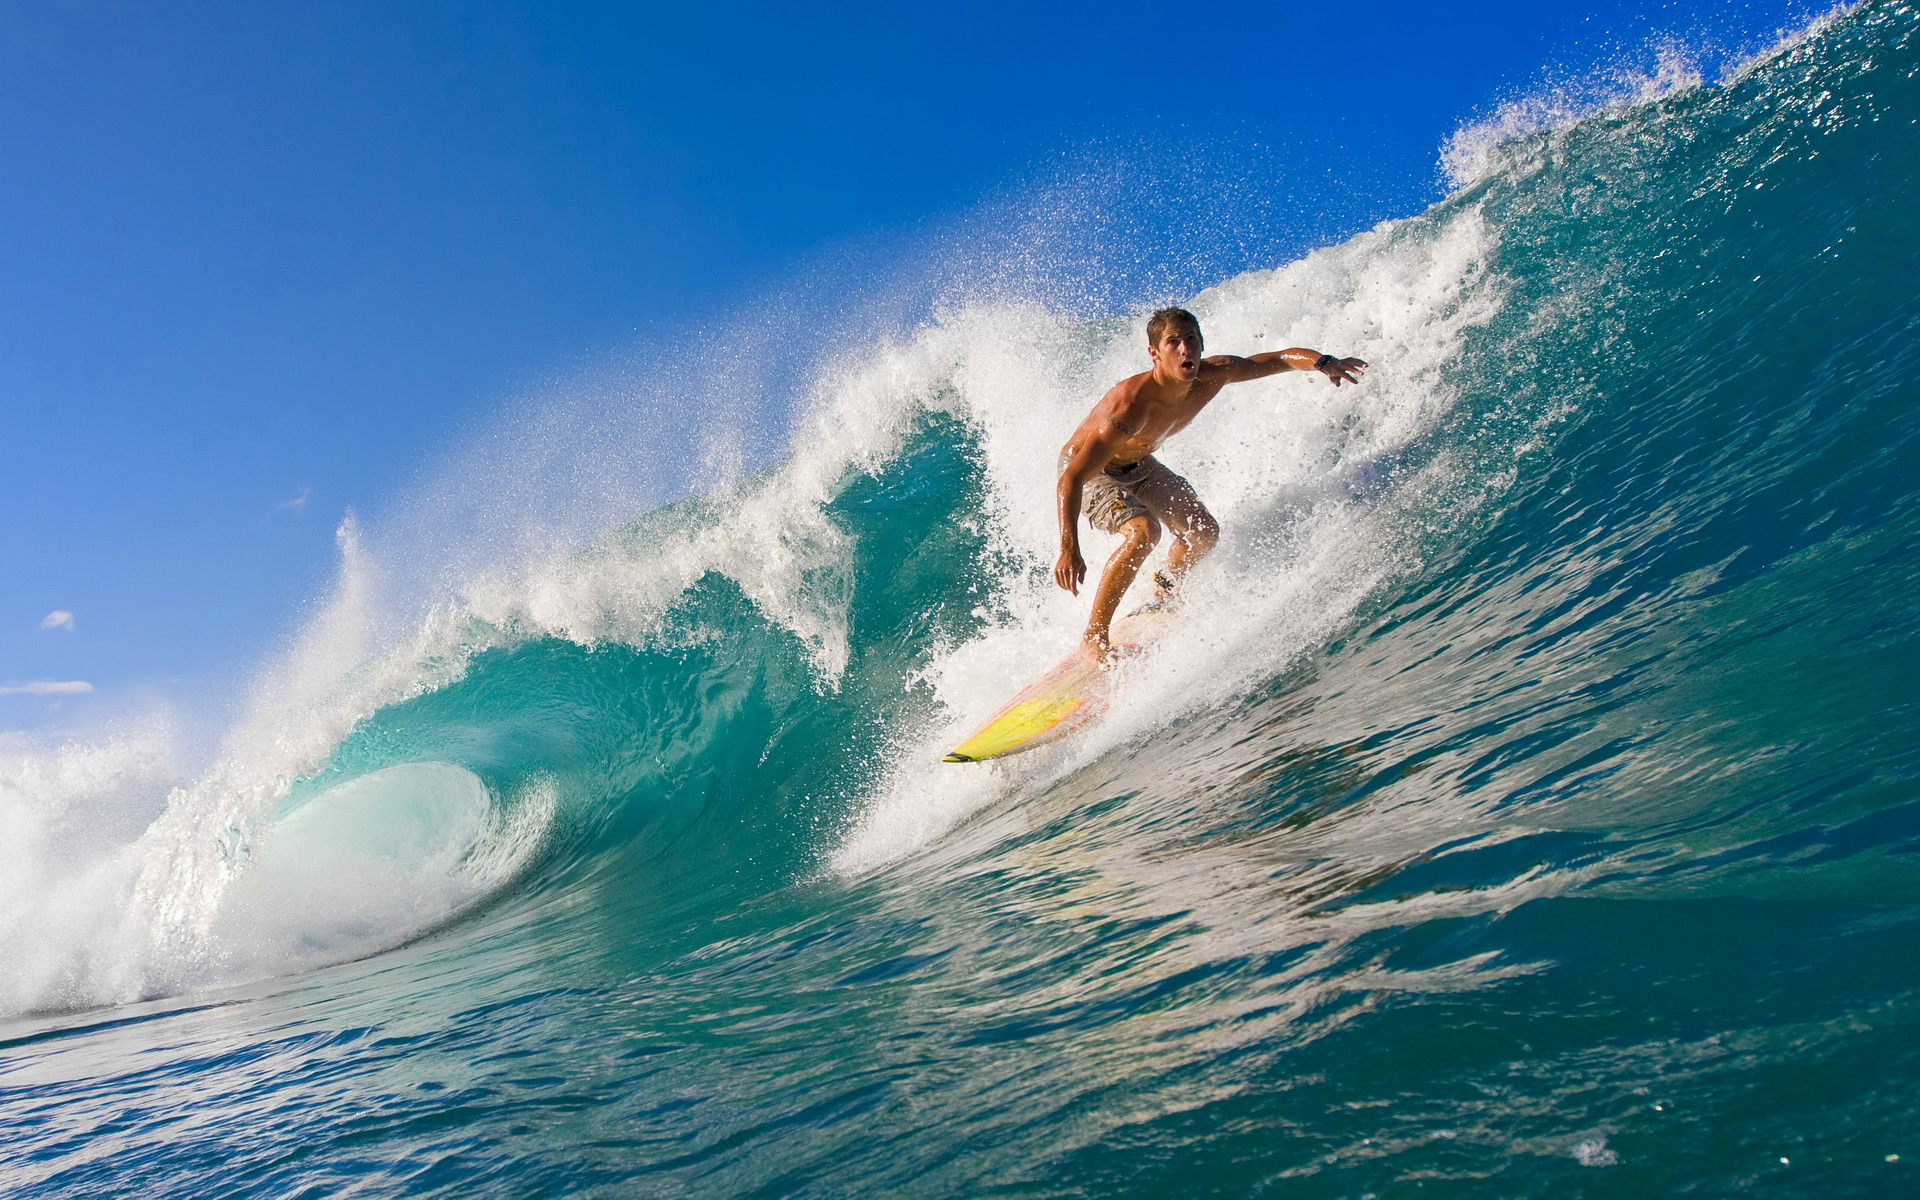 Surfing Wallpaper surfing wallpapers desktop backgrounds 1920x1200 1920x1200